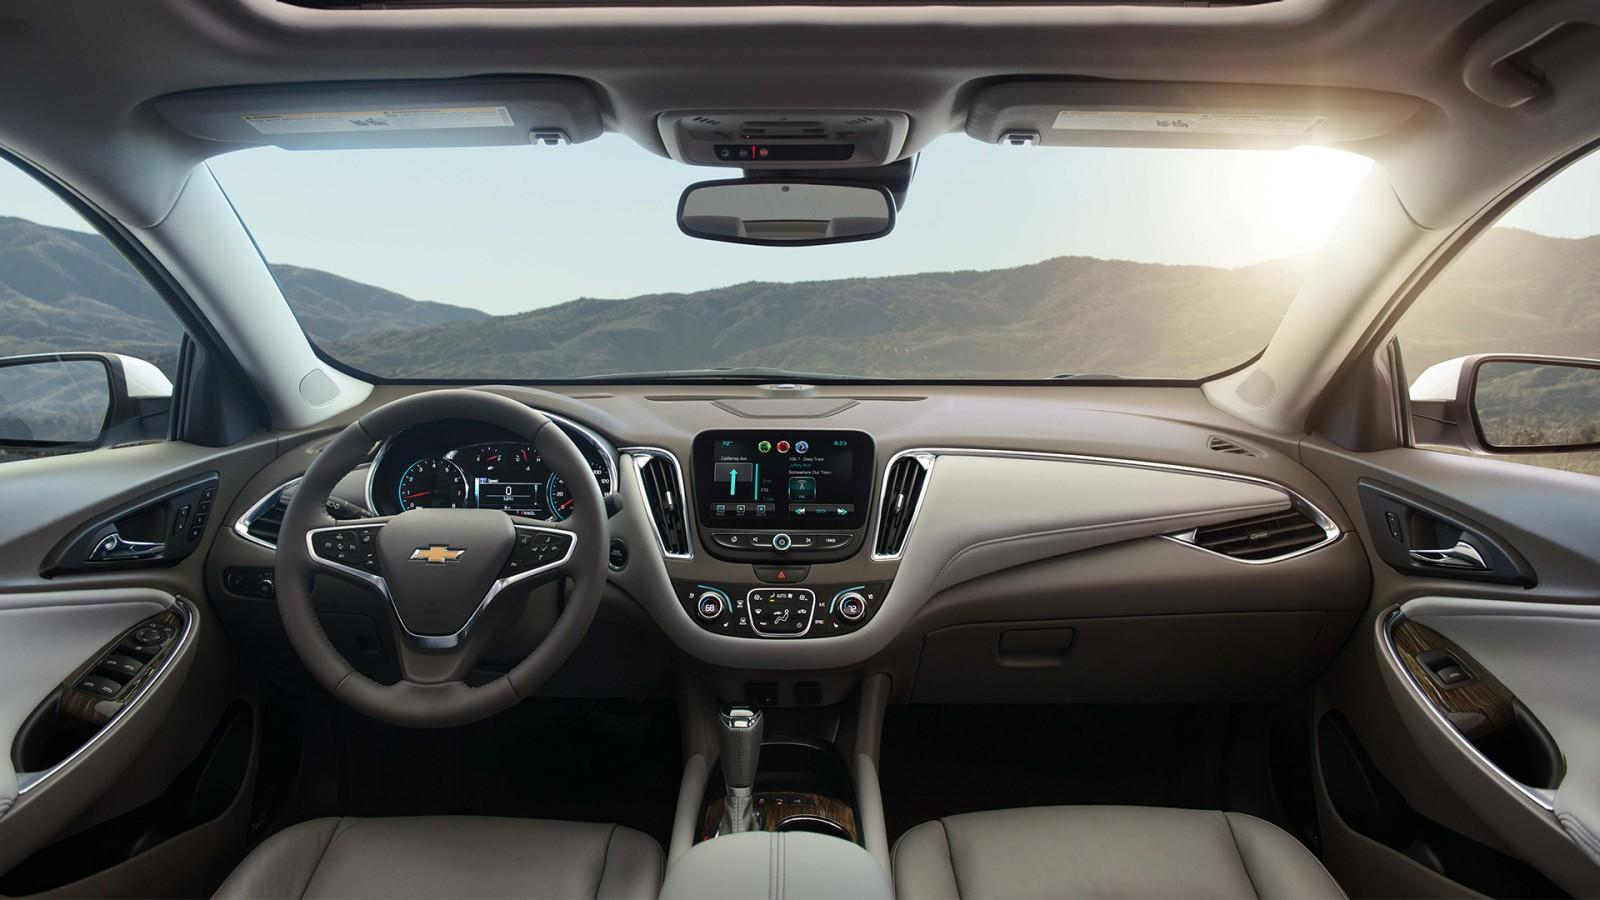 2018 Chevy Malibu Hybrid Interior Pictures